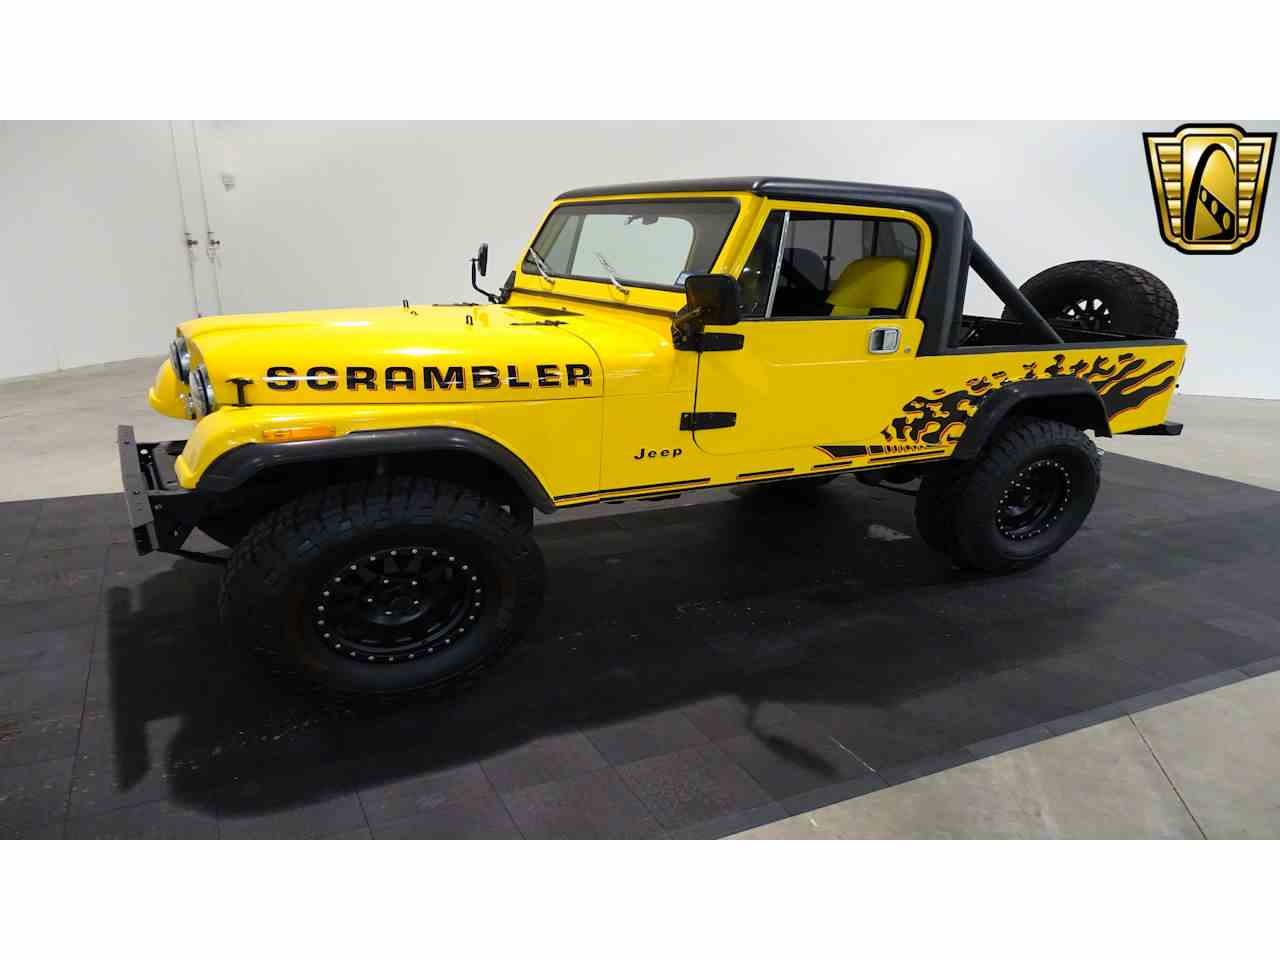 Large Picture of '85 Jeep CJ8 Scrambler located in Texas - $32,595.00 Offered by Gateway Classic Cars - Houston - KEST